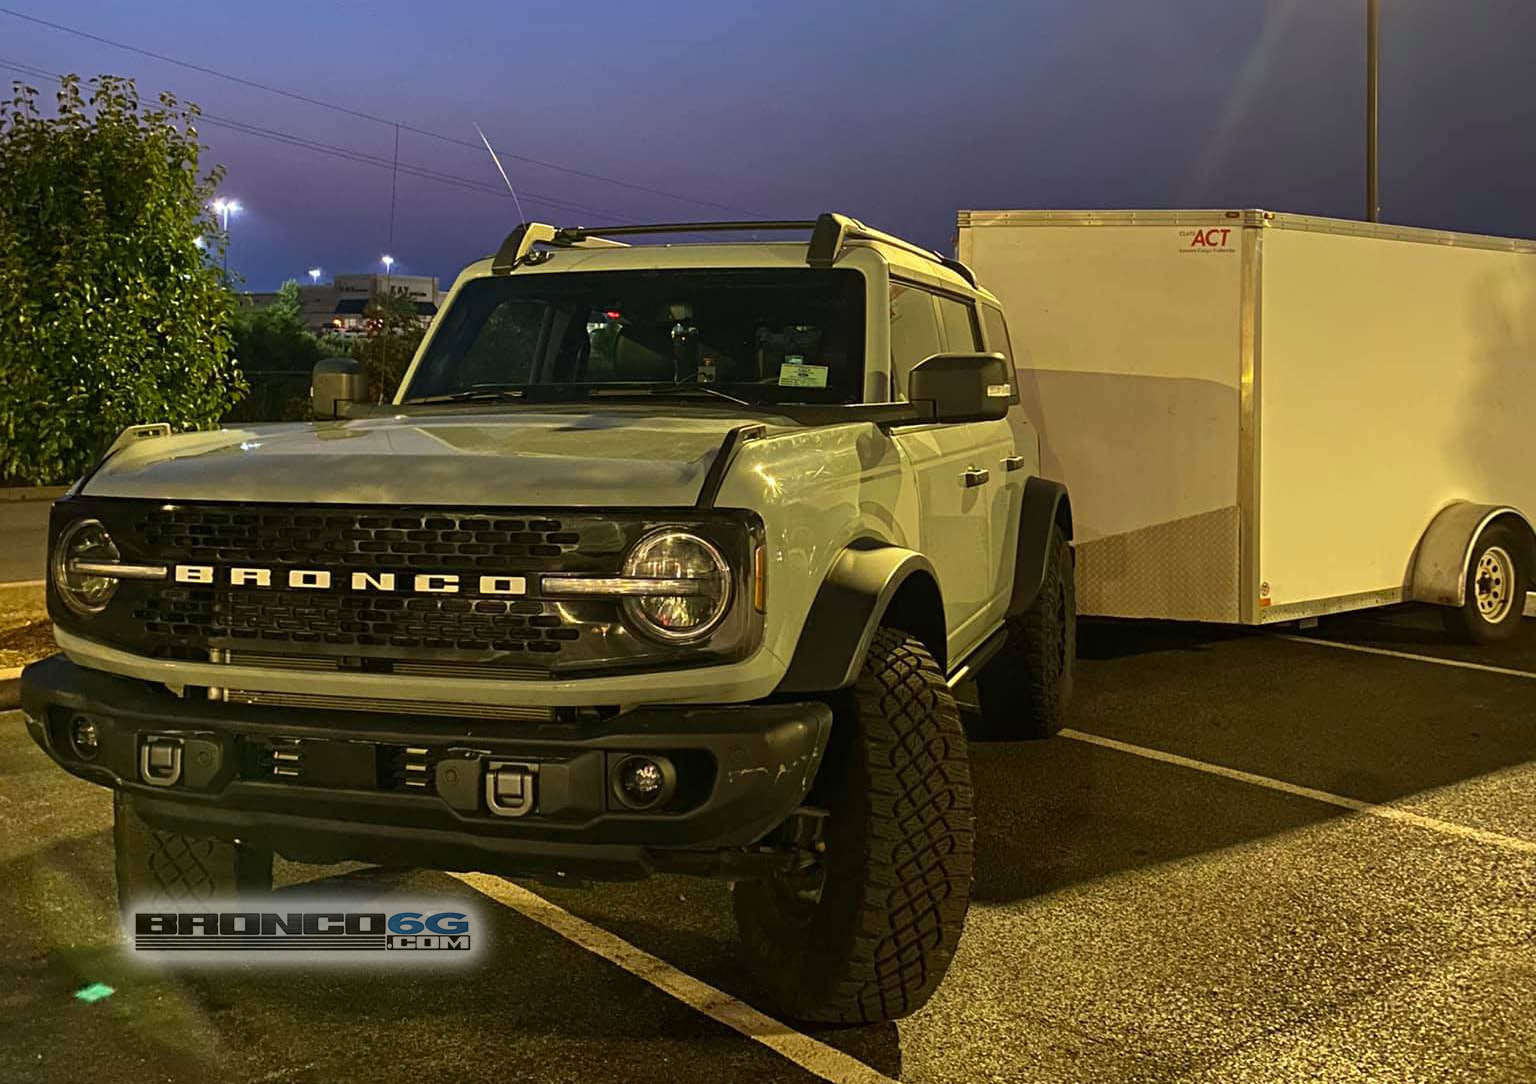 Cactus Gray 2021 Bronco Sasquatch Towing Trailer.jpg